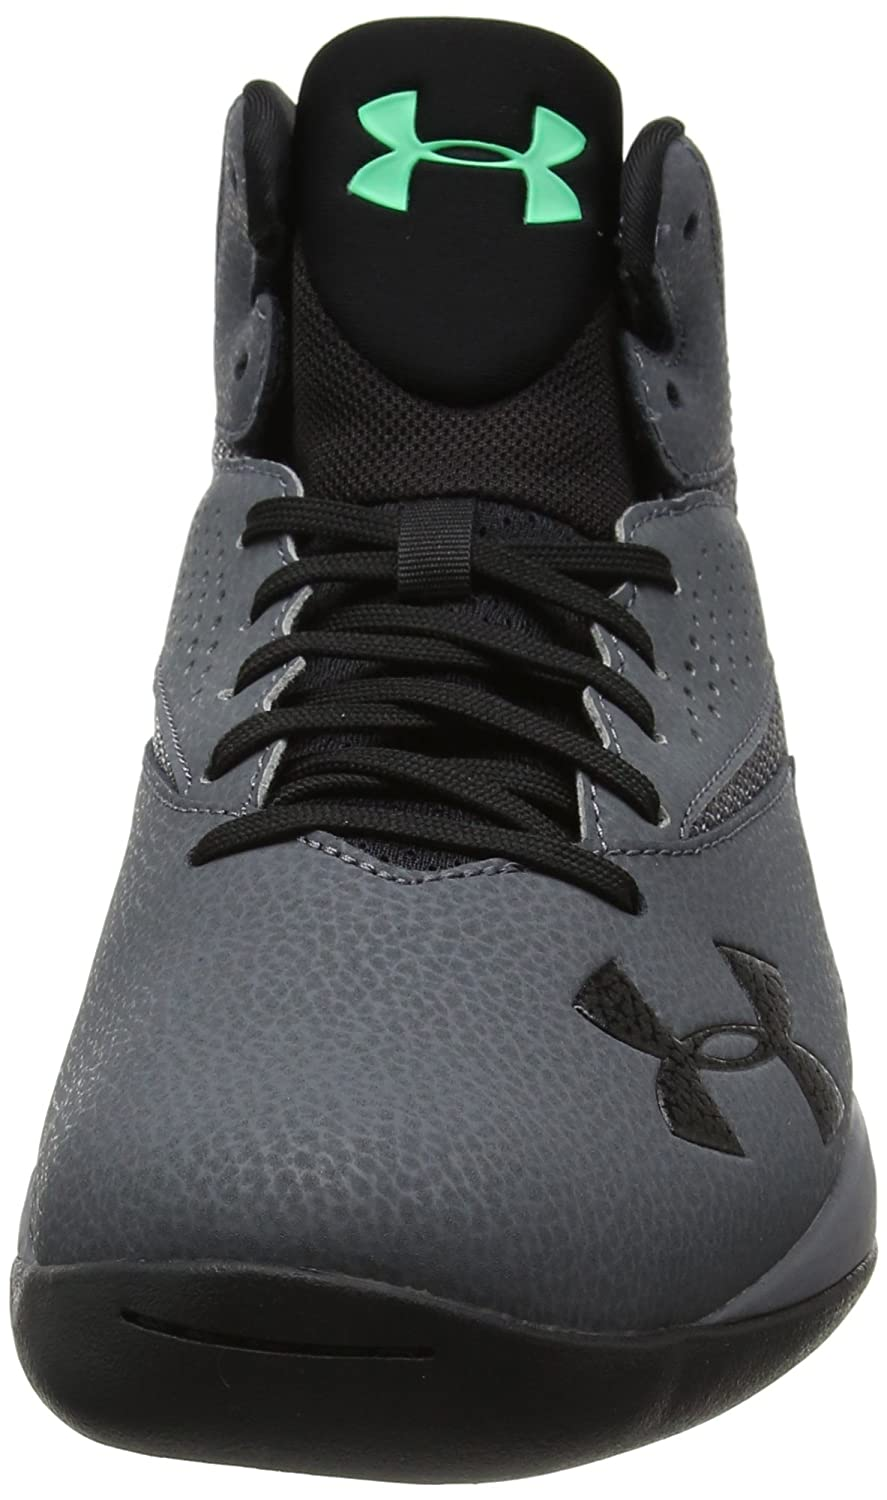 Menns Under Armour Låsing Basketball Sko xj3mh